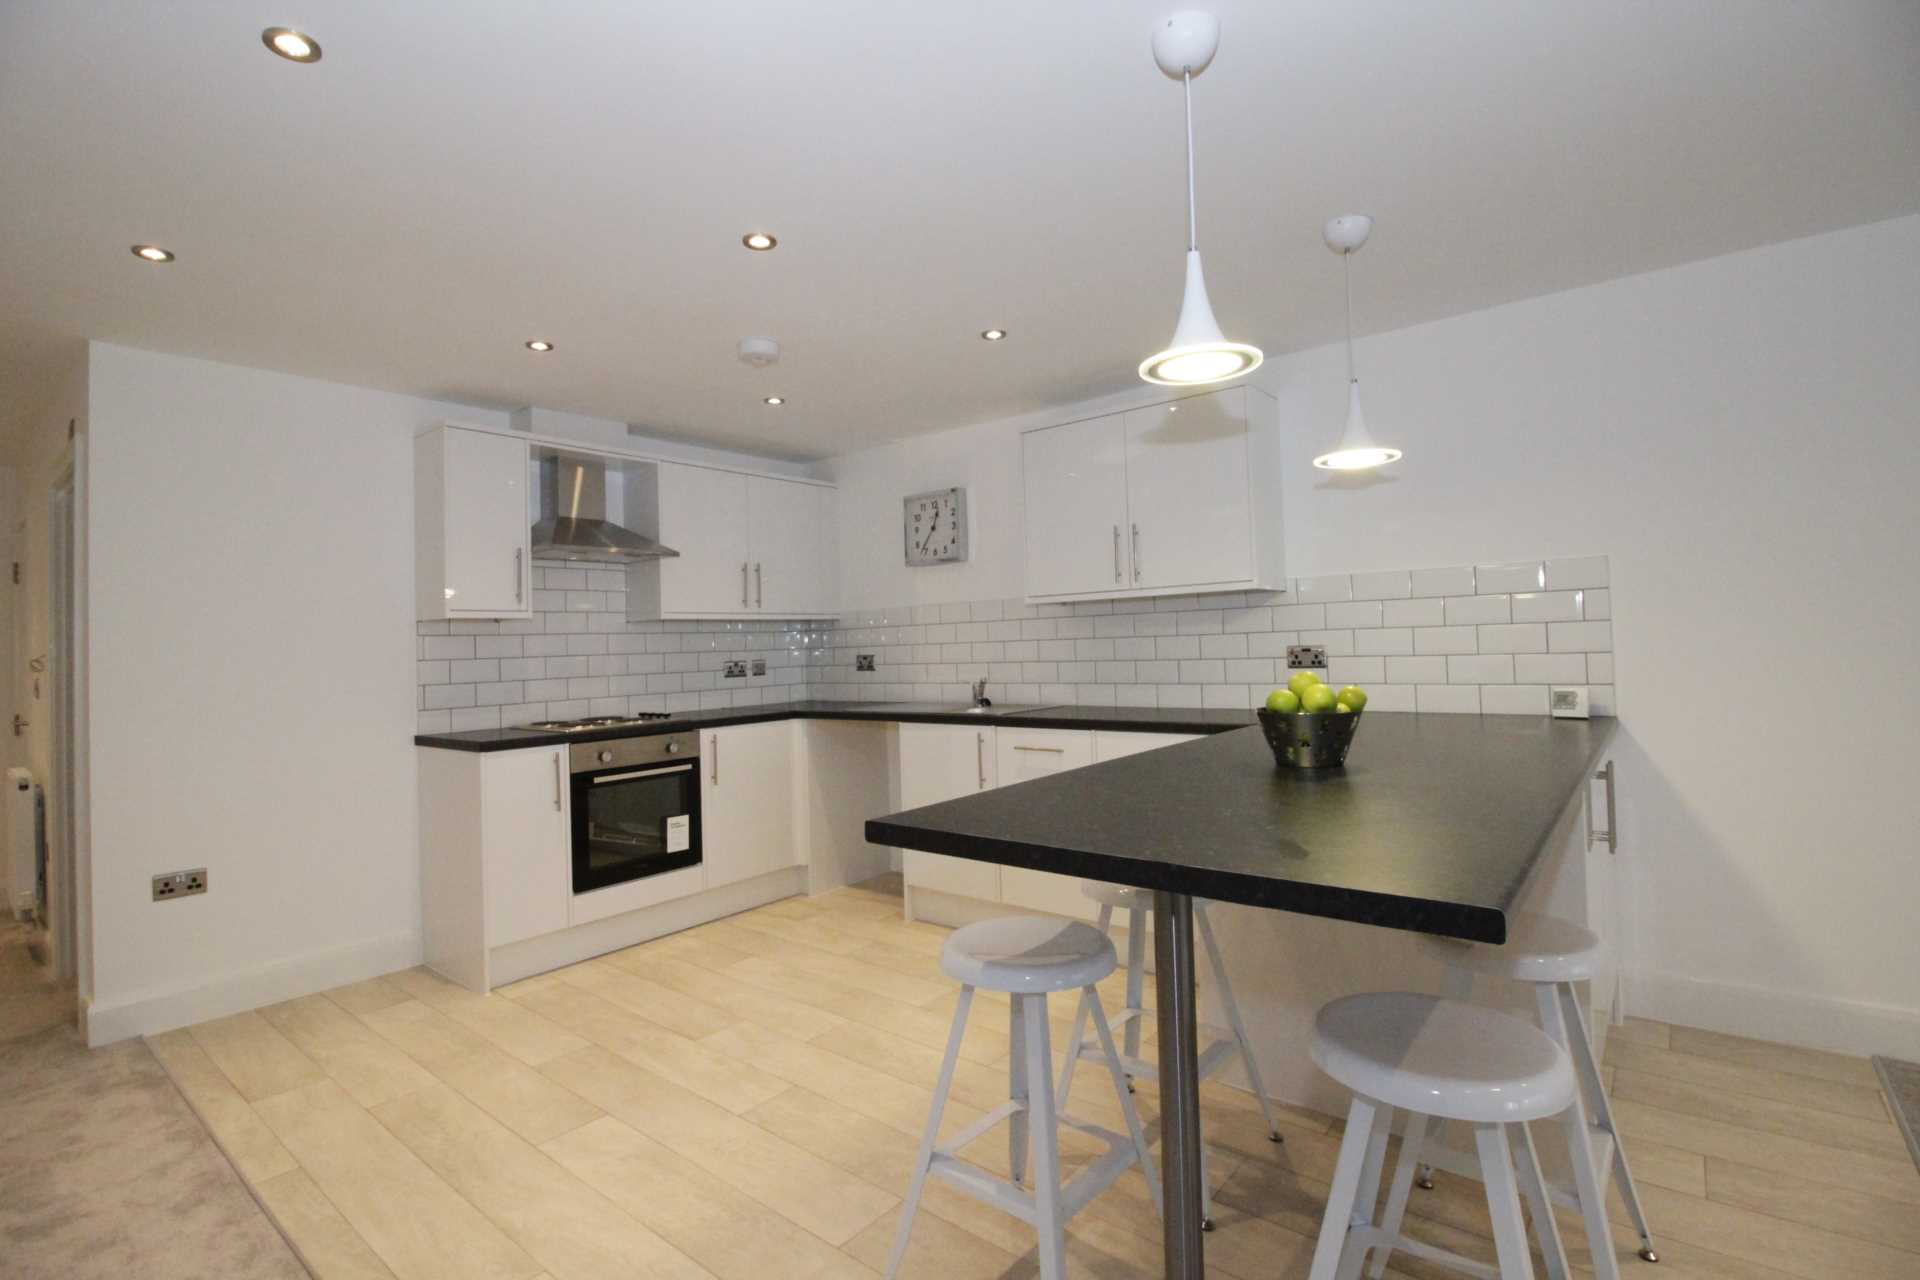 Is 747 A Good Credit Score >> 1 bedroom flat for sale, Mariner House, High Street, Southend-on-sea, SS1 1LL – TheHouseShop.com